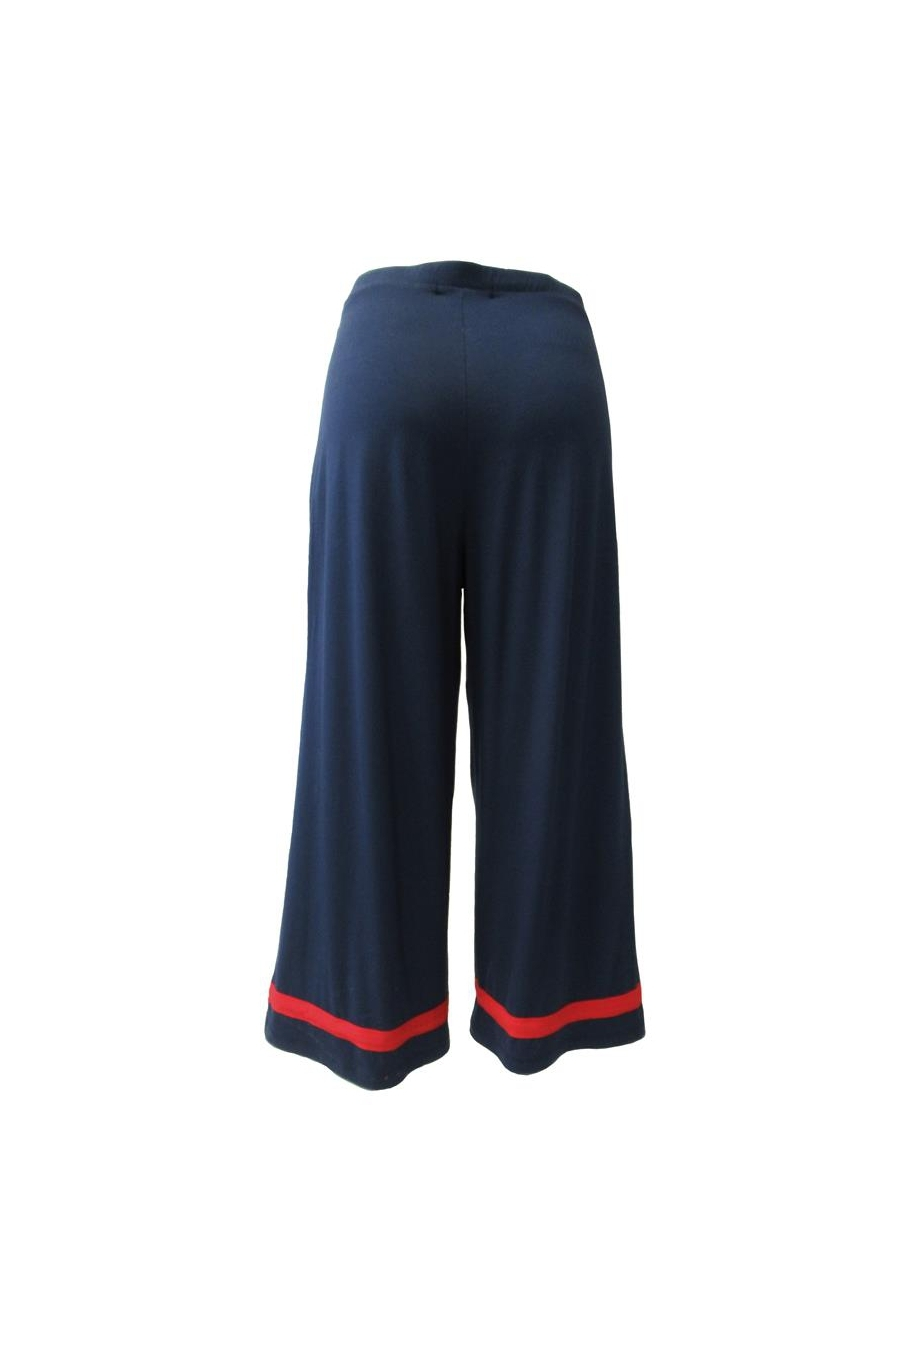 Maloka: Just So Comfy Cropped Pant (More Colors!)